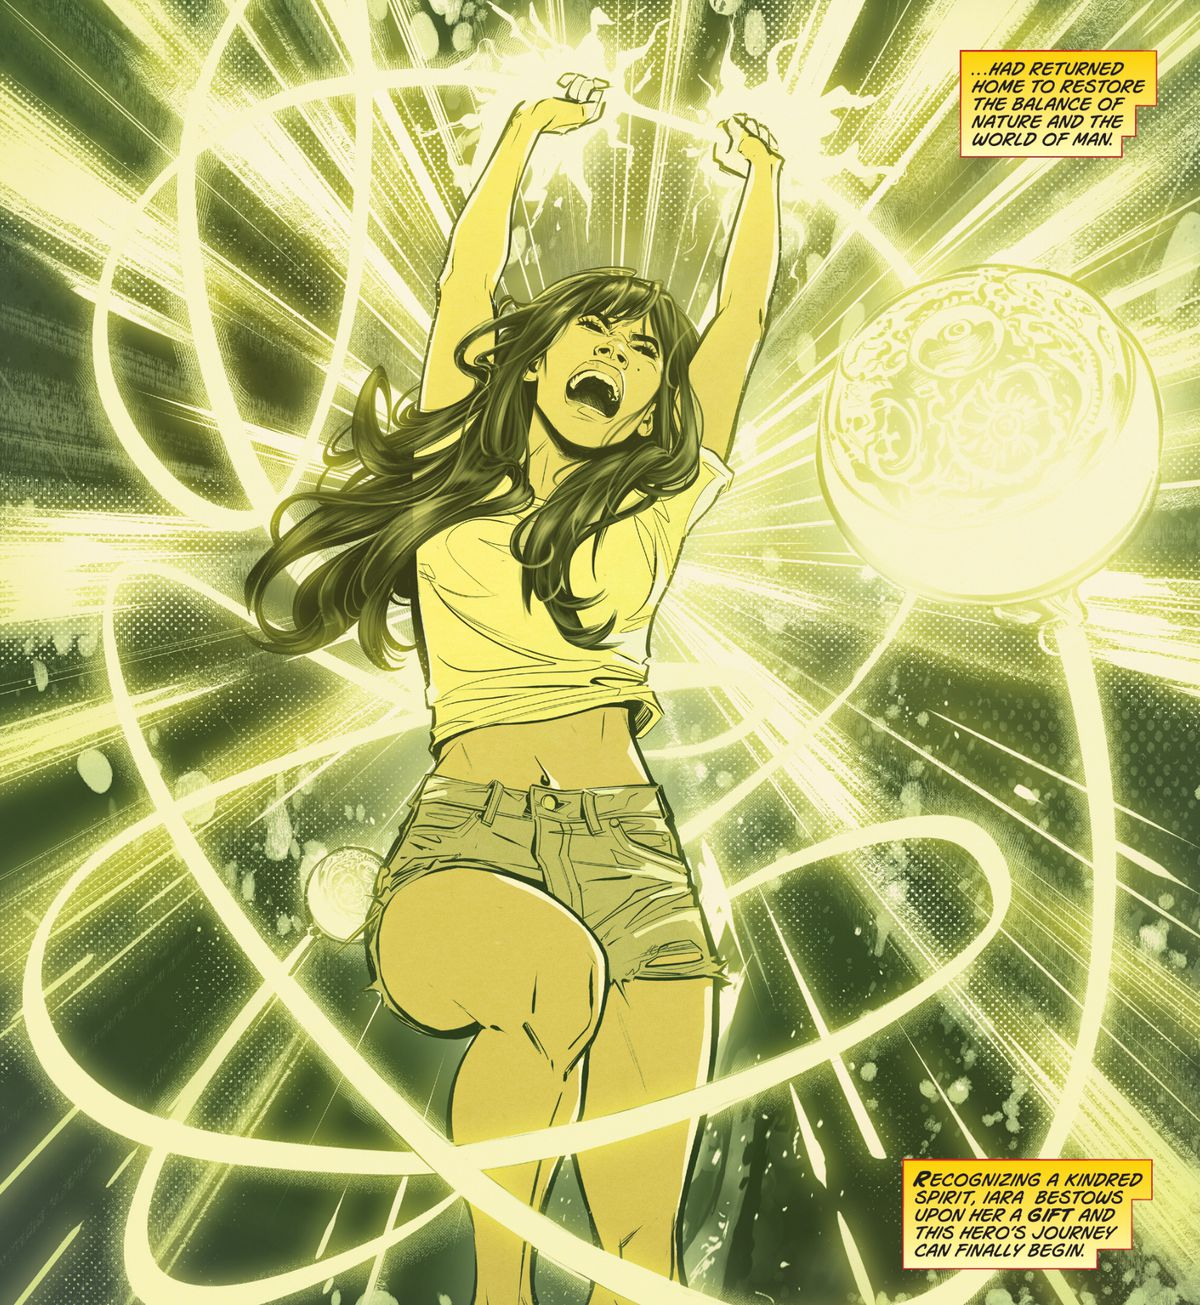 Yara Flor is transfixed by divine energy when she grasps the golden boladora and is embodied with the power of Wonder Girl in Wonder Girl #2 (2021).